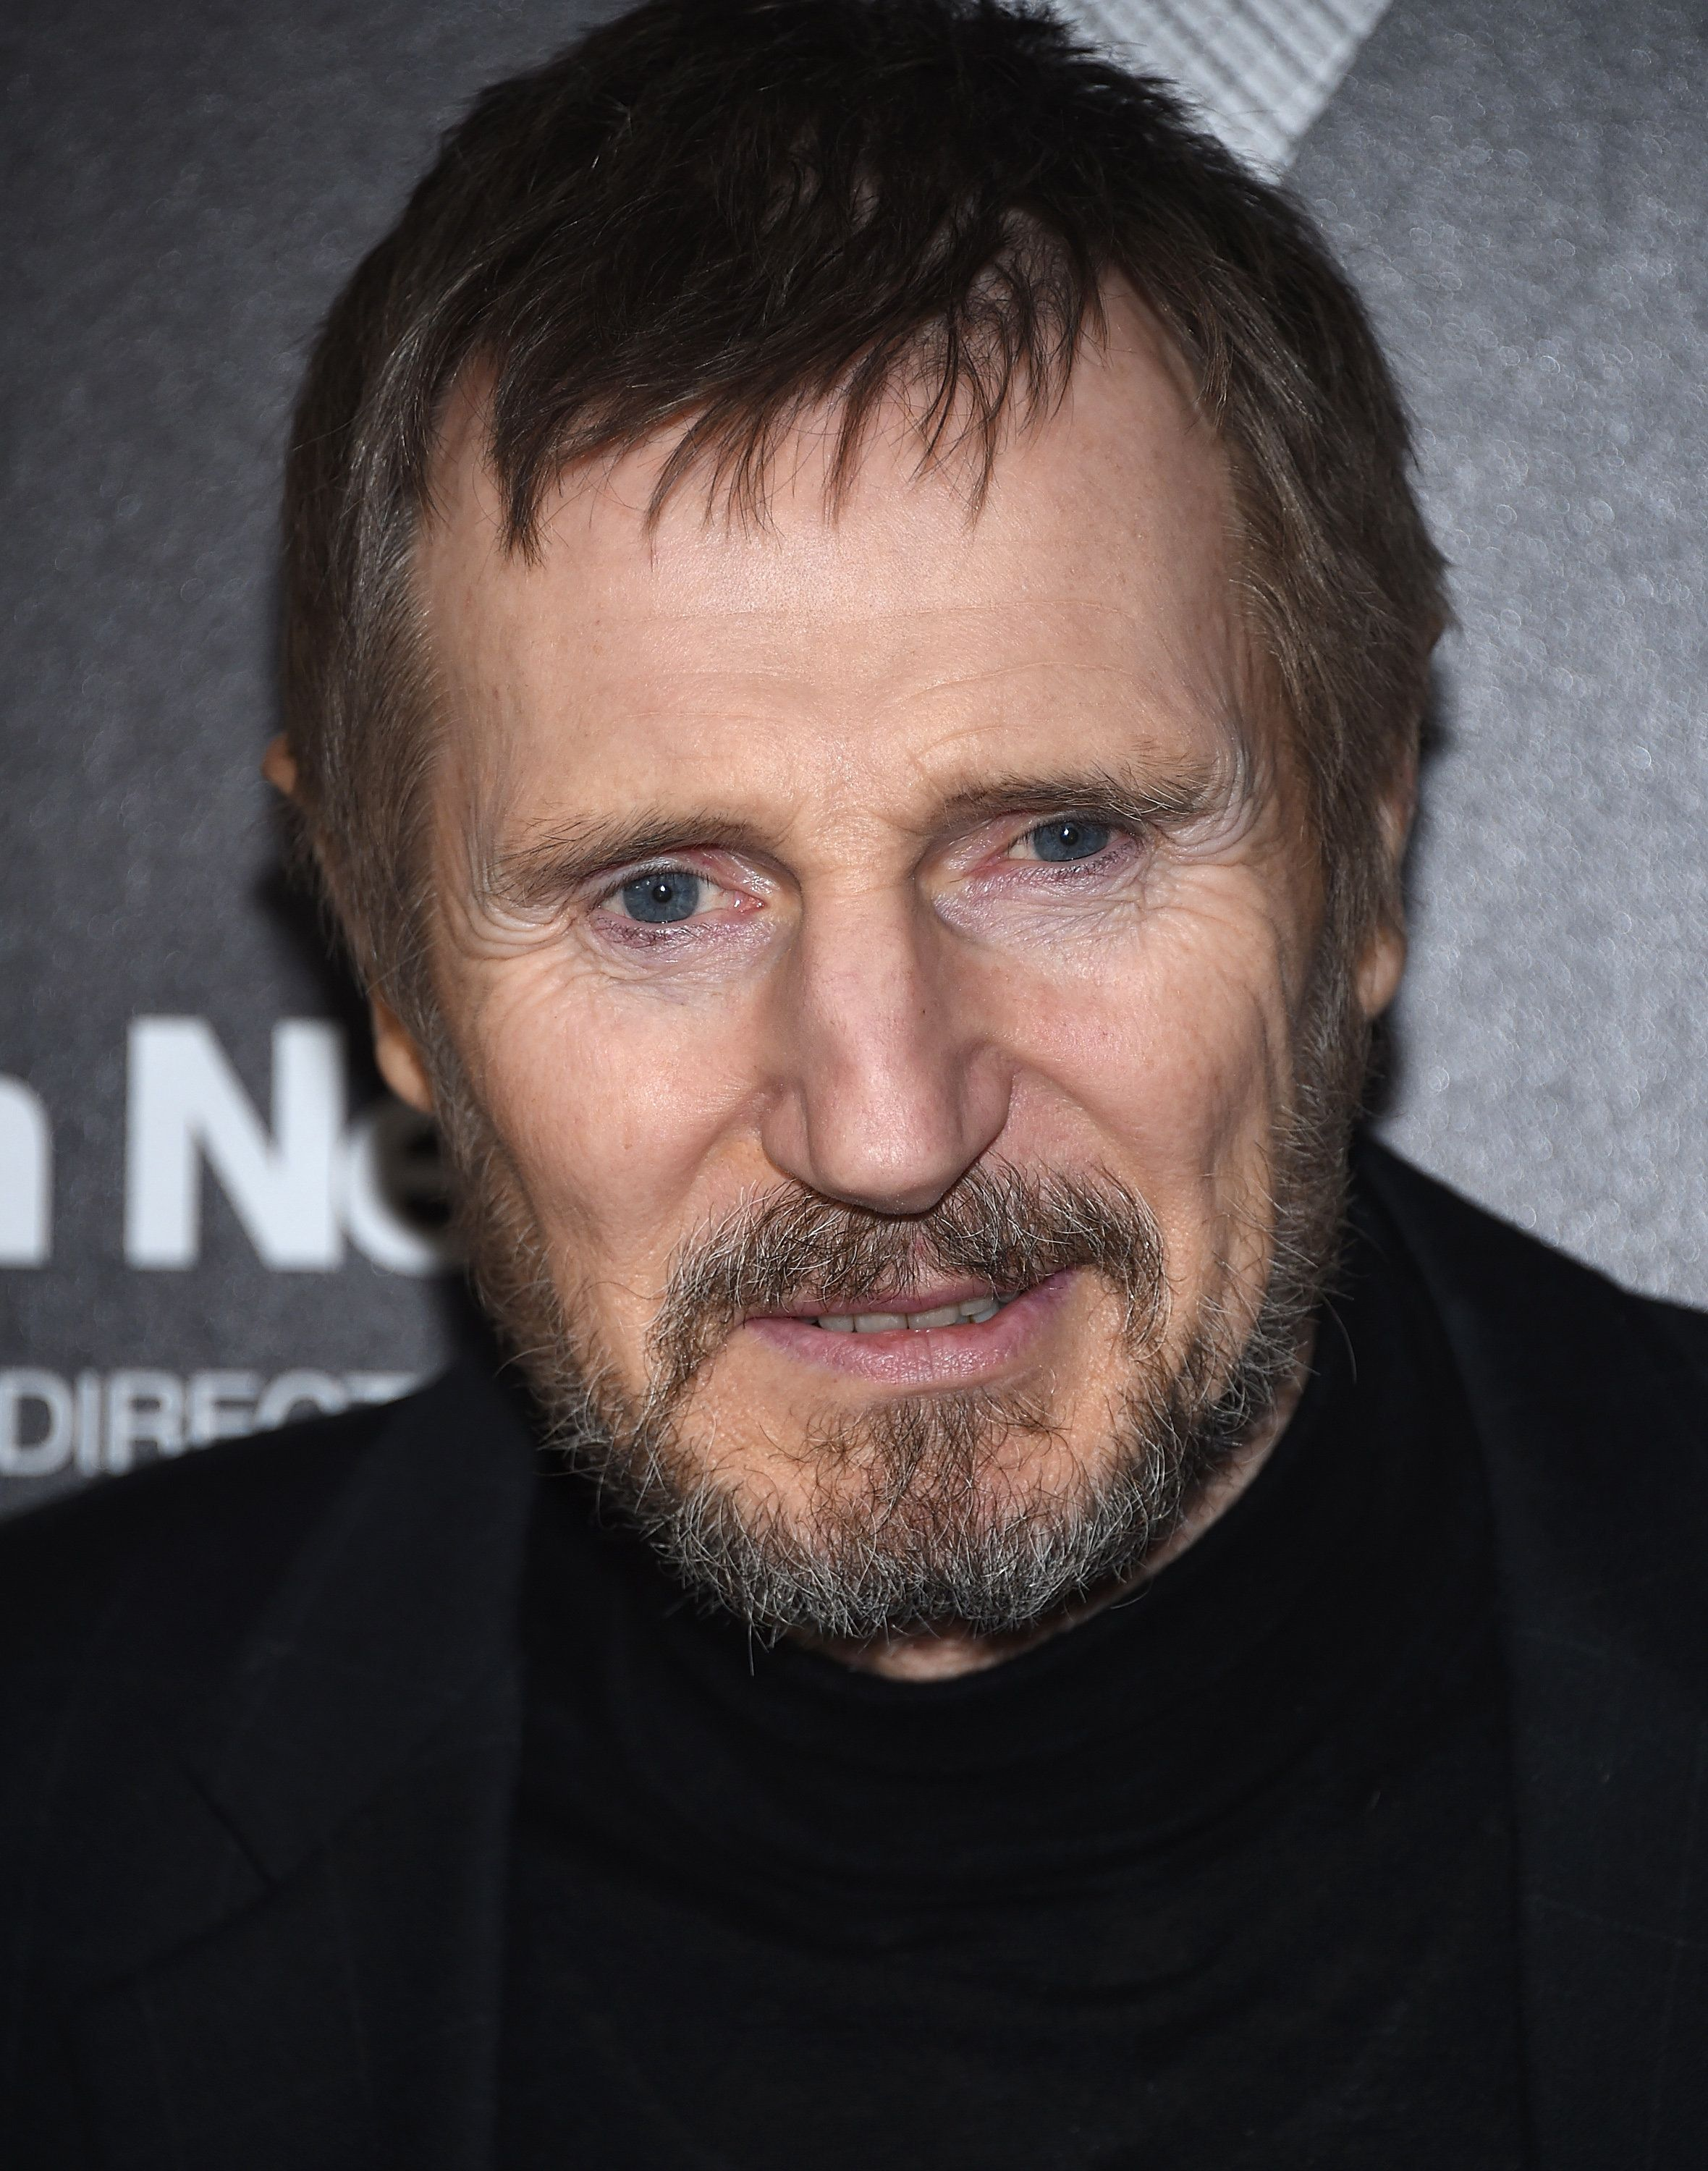 Liam Neeson Calls The #MeToo Movement A 'Bit Of A Witch